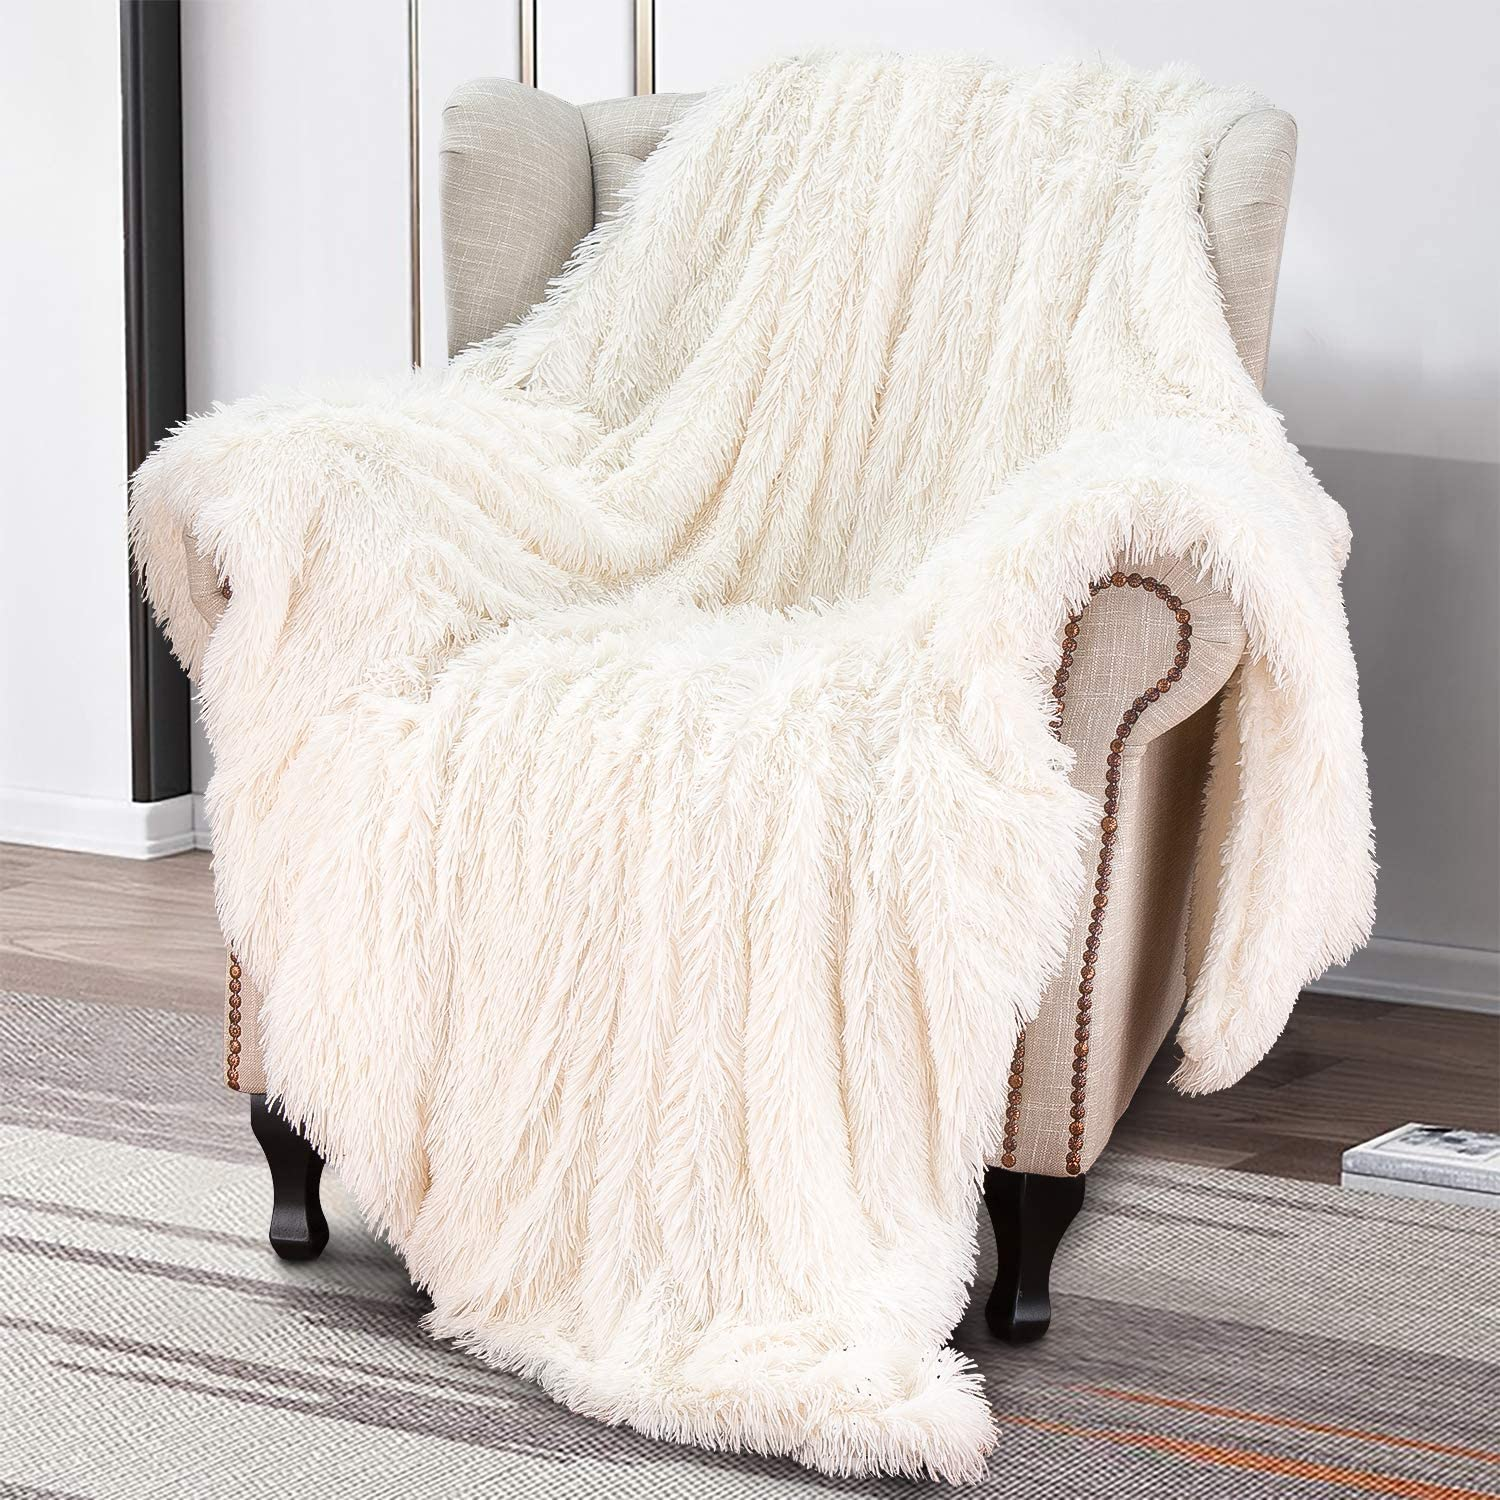 """Softlife Super Soft Fluffy Faux Fur Throw Blanket 50"""" x 60"""" Reversible Plush Warm Sherpa Blankets for Couch Sofa Bed Throws Home Decorative, Cream"""